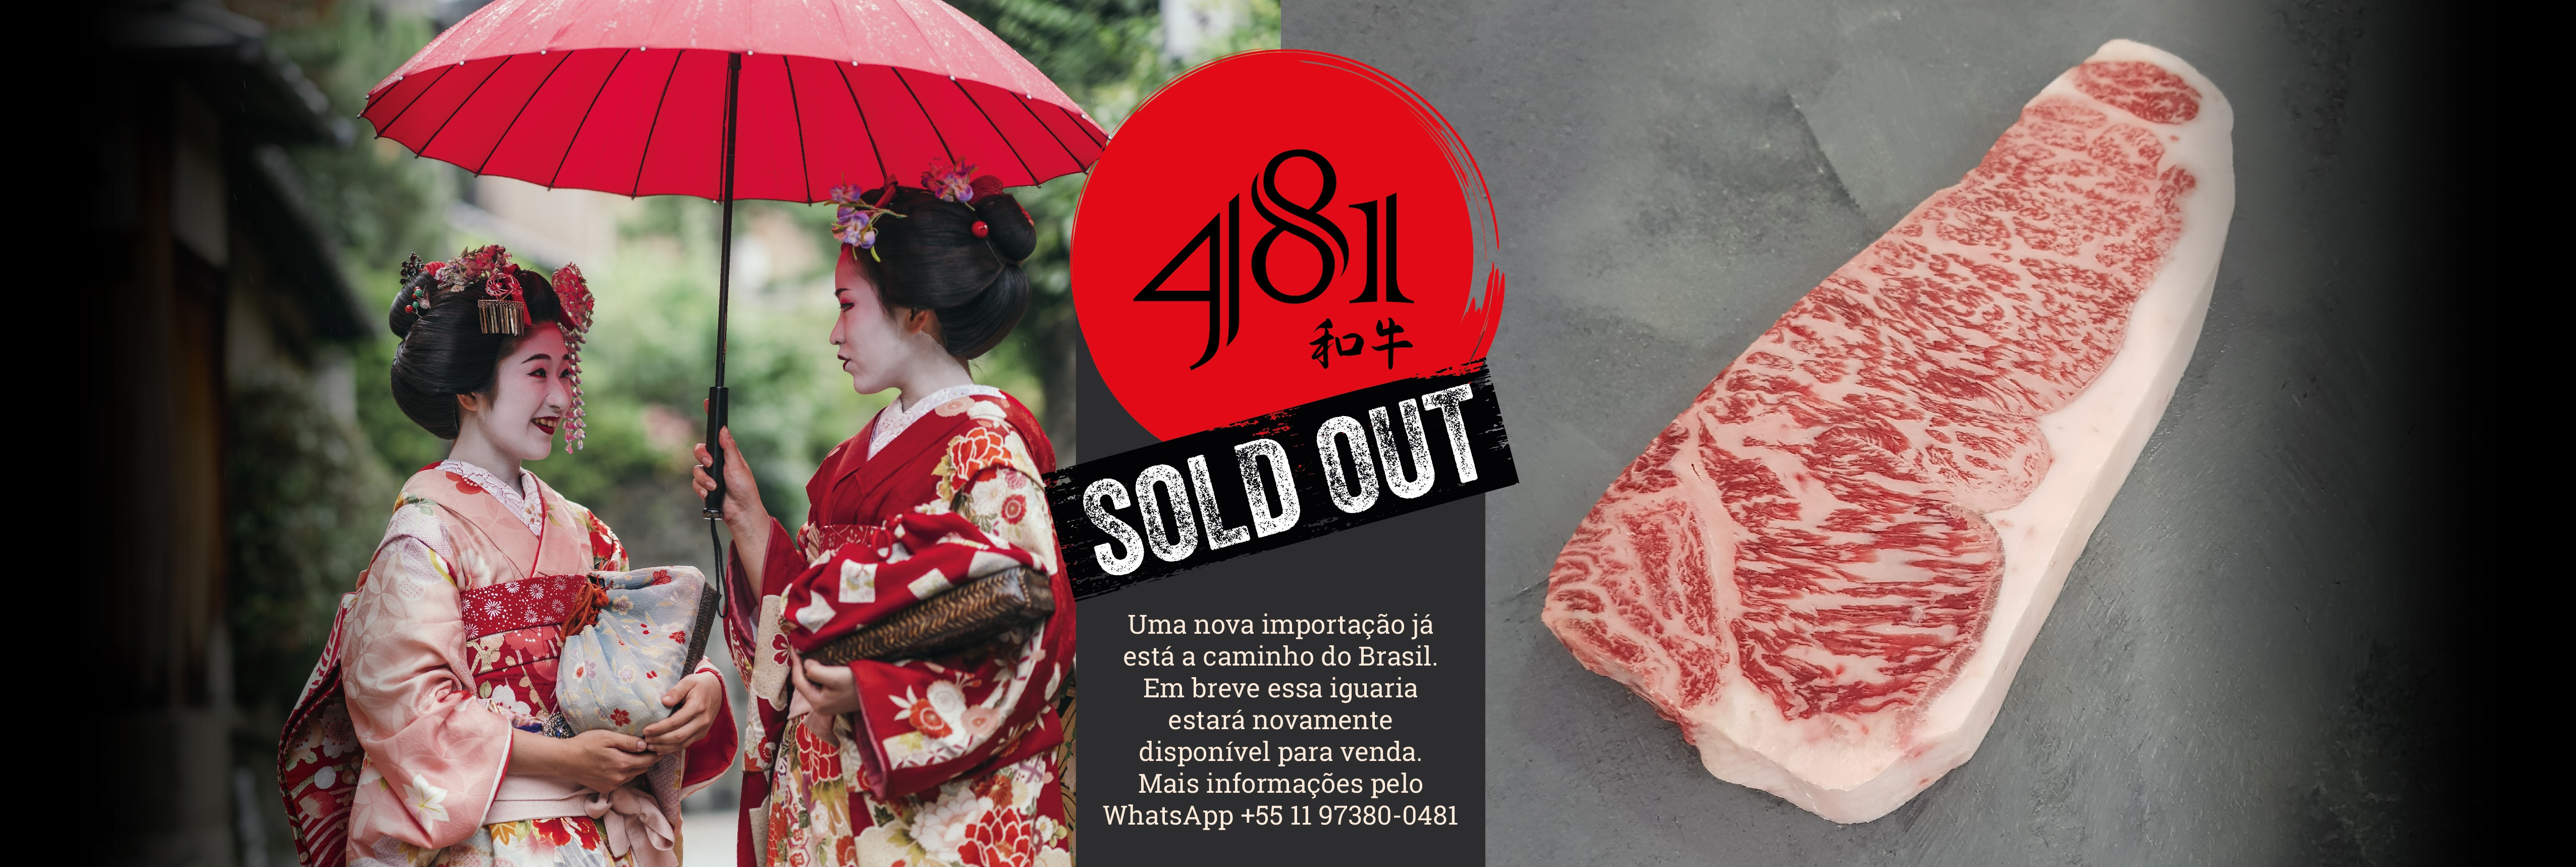 wagyu sold out